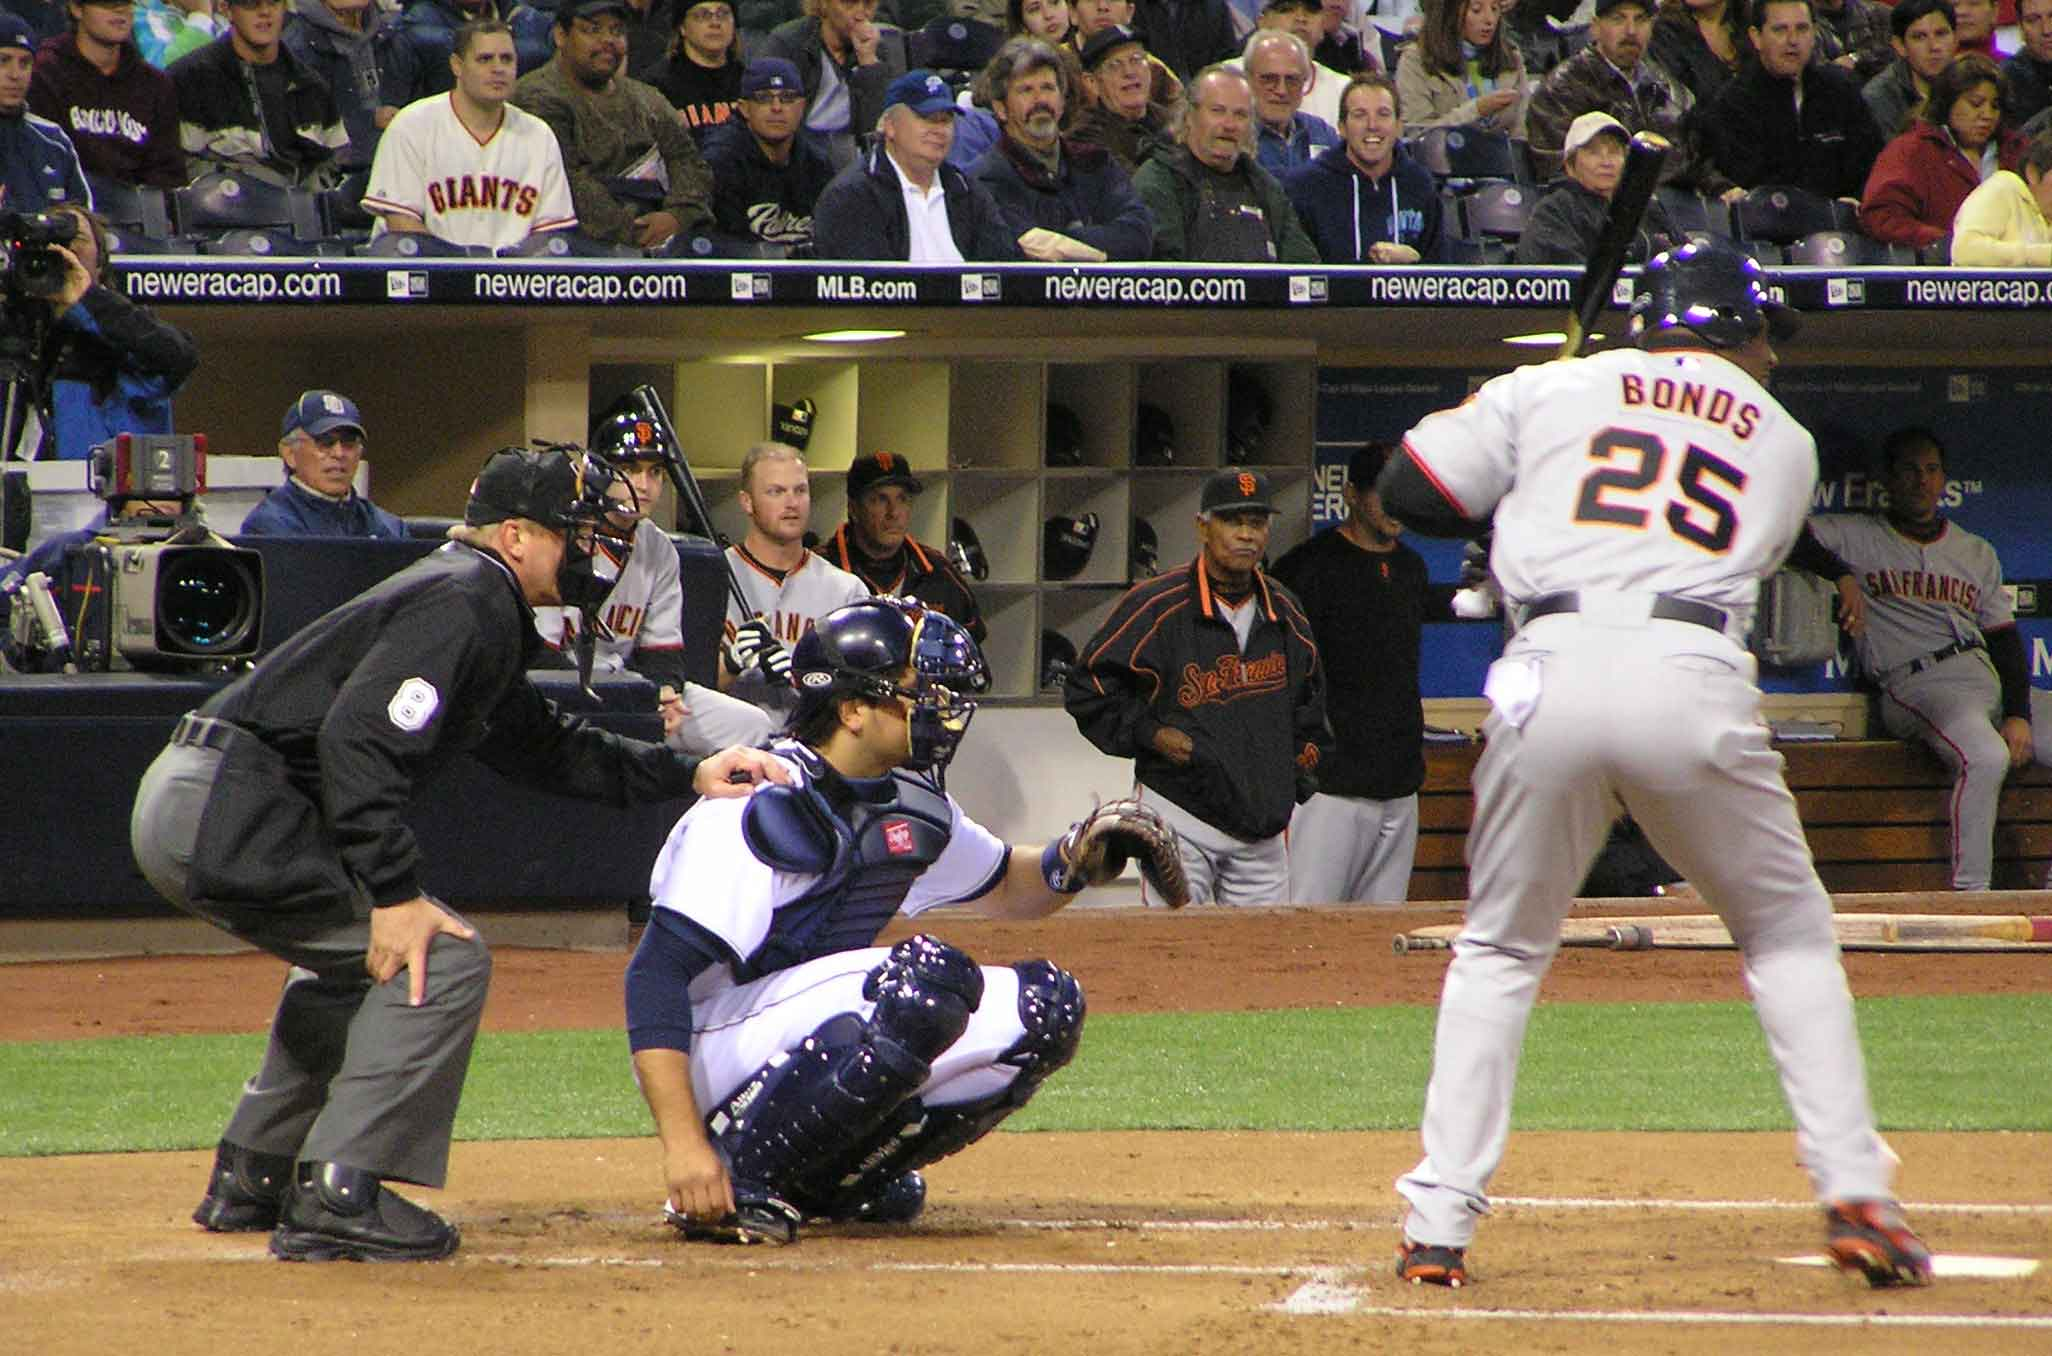 petcobonds